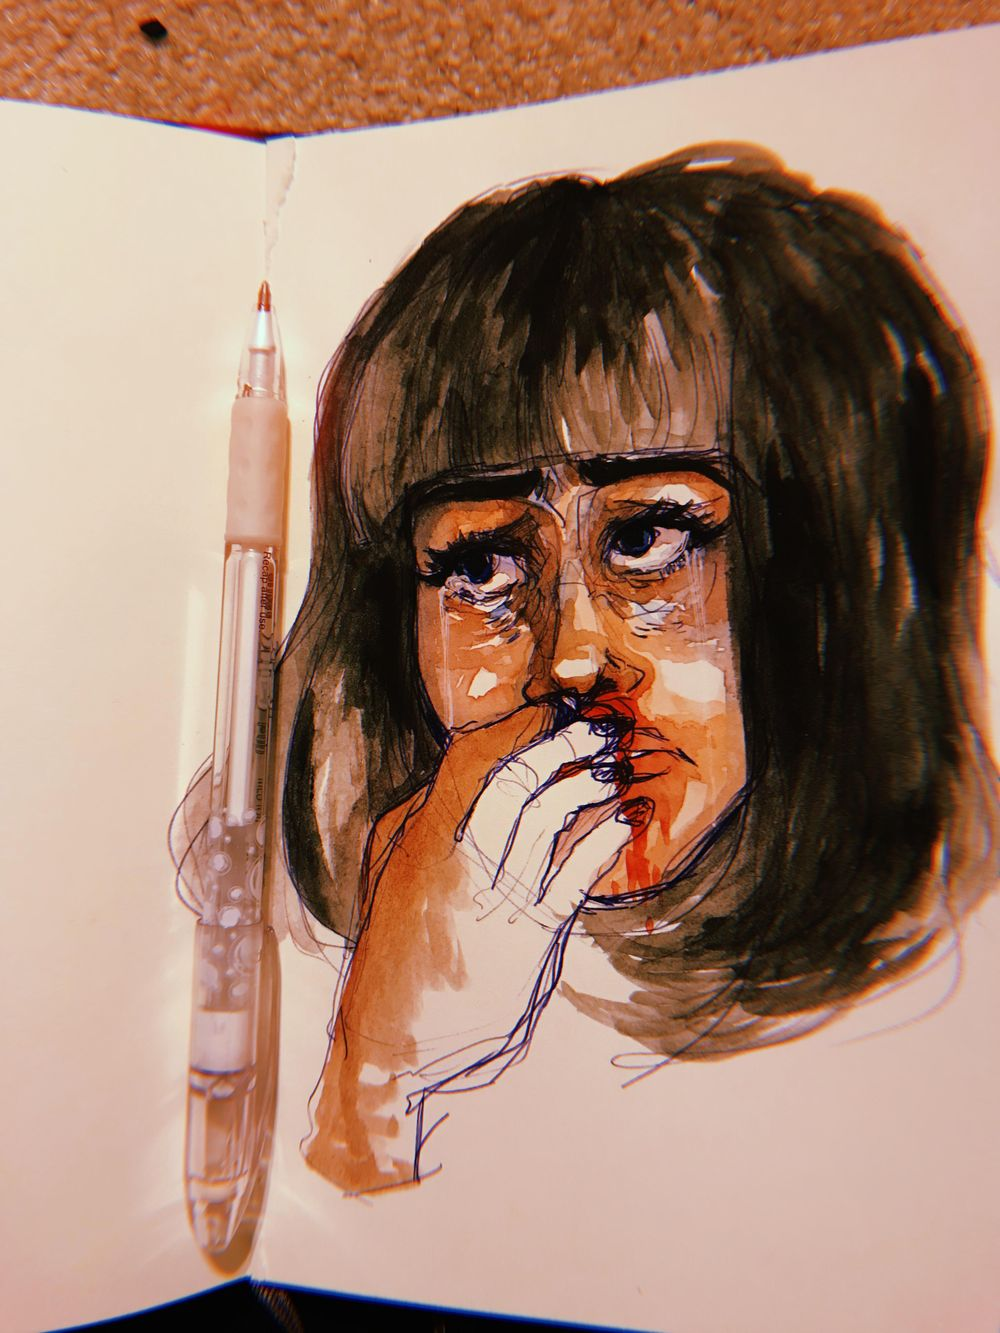 watercolor portraits - image 2 - student project